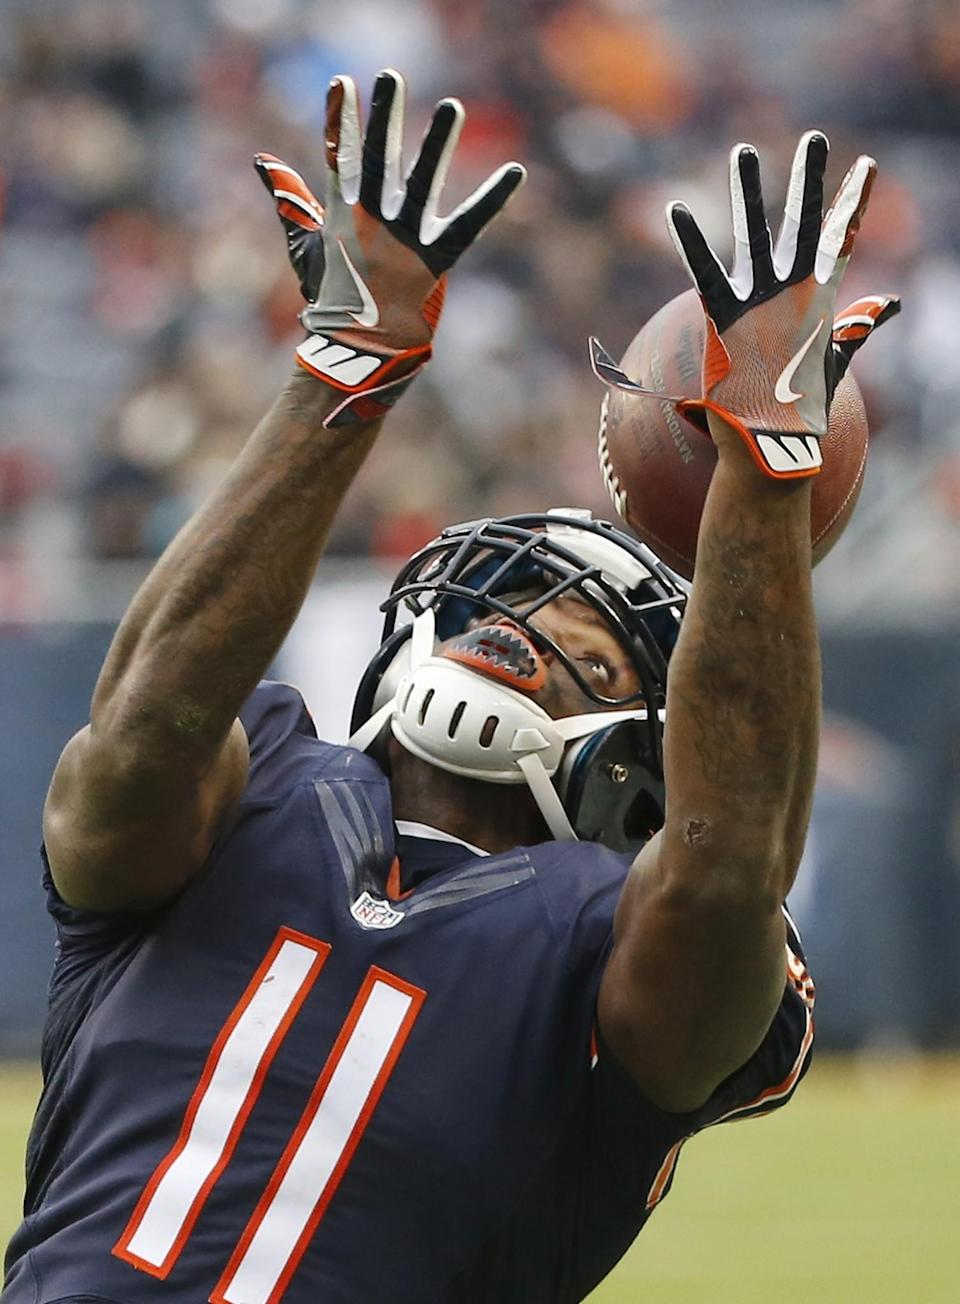 <p>Chicago Bears wide receiver Josh Bellamy (11) misses a catch during the second half of an NFL football game against the Tennessee Titans, Sunday, Nov. 27, 2016, in Chicago. (AP Photo/Charles Rex Arbogast) </p>